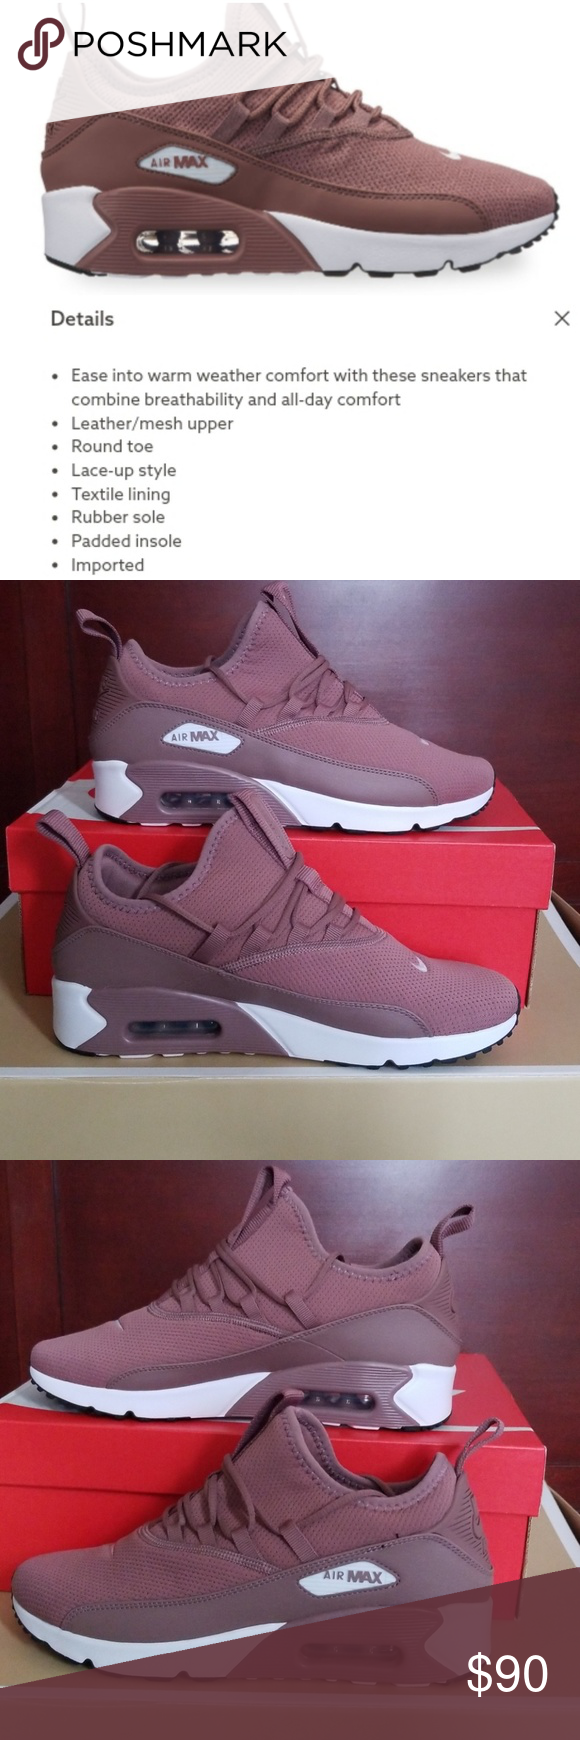 newest collection f7ad3 3a8c8 NIB! NIKE AIR MAX 90 EZ Colors  Smokey Mauve and White with some Black